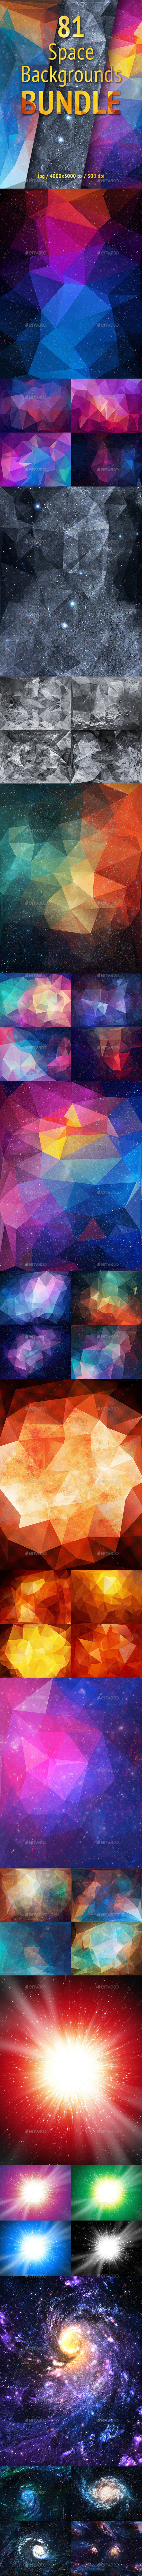 GraphicRiver 81 Space Backgrounds Bundle 11627987